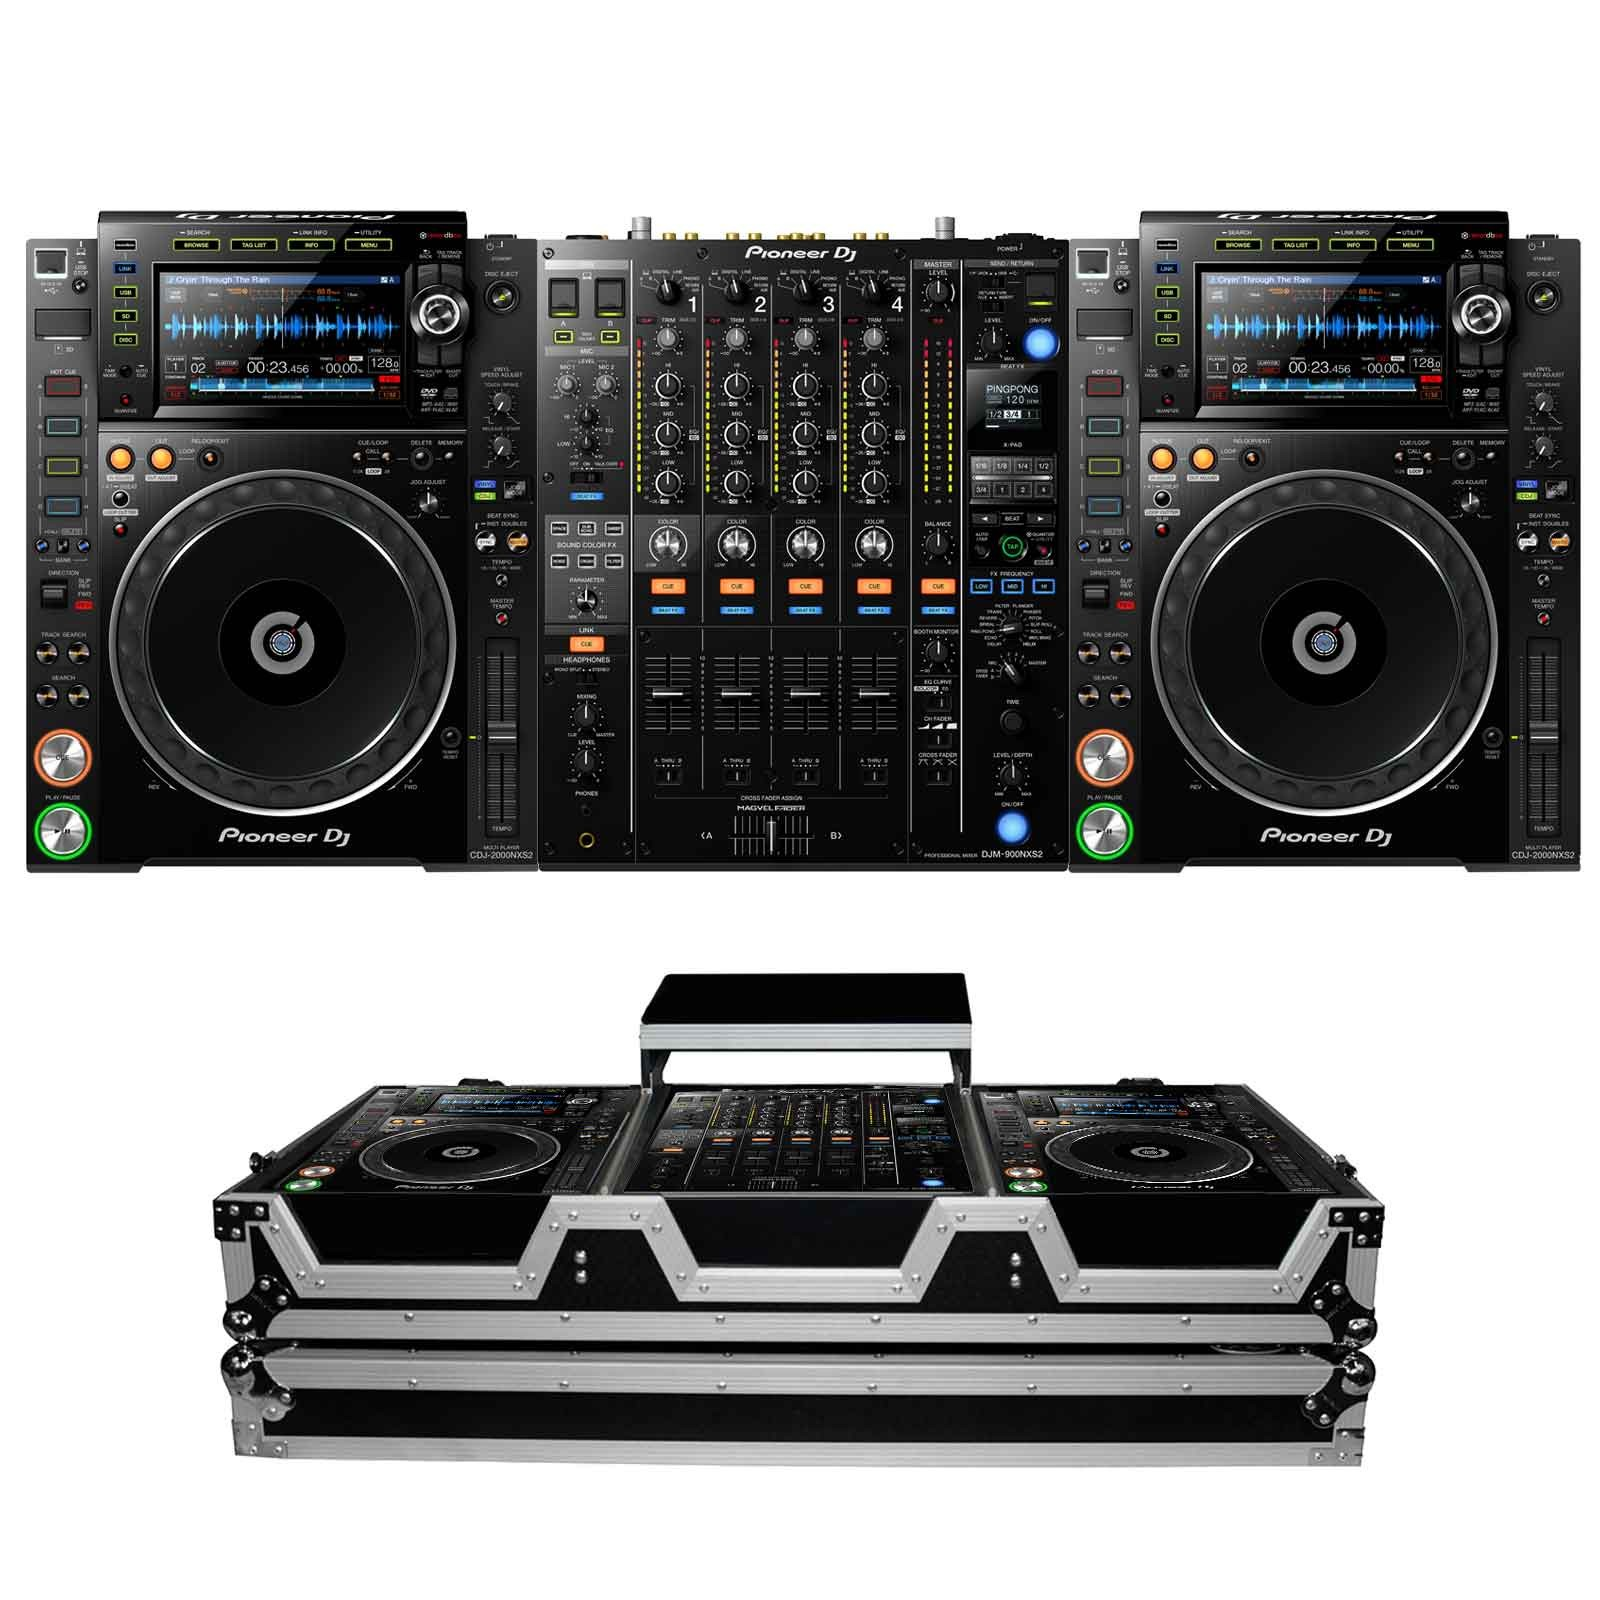 pioneer dj cdj 2000nxs2 djm 900nxs2 package 2. Black Bedroom Furniture Sets. Home Design Ideas